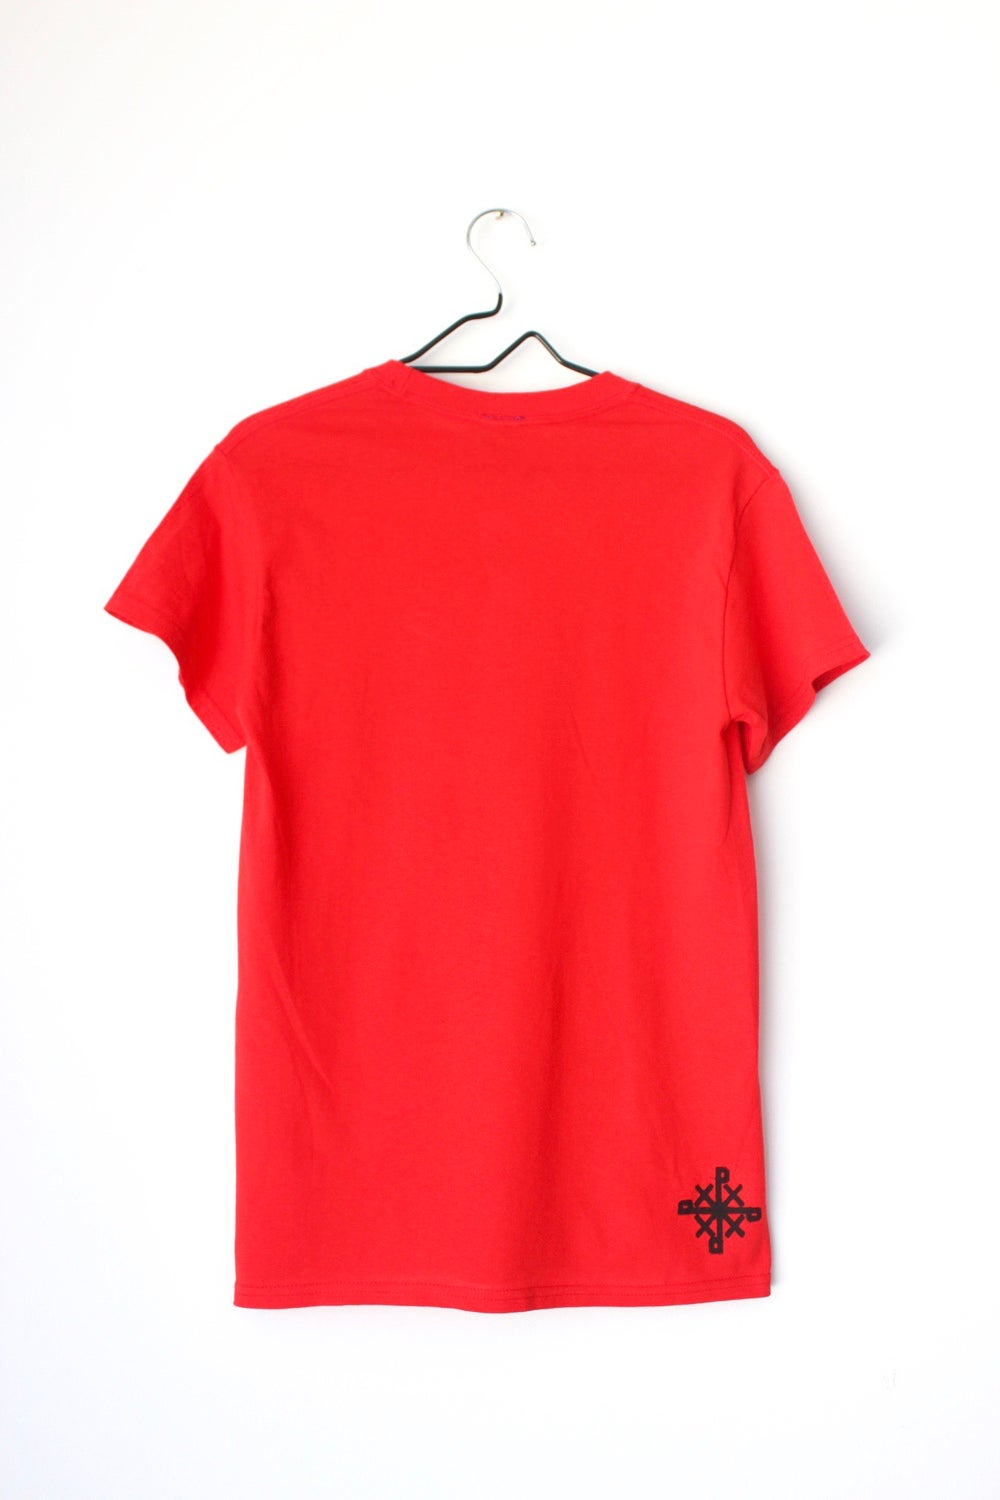 Protect Us tee in red